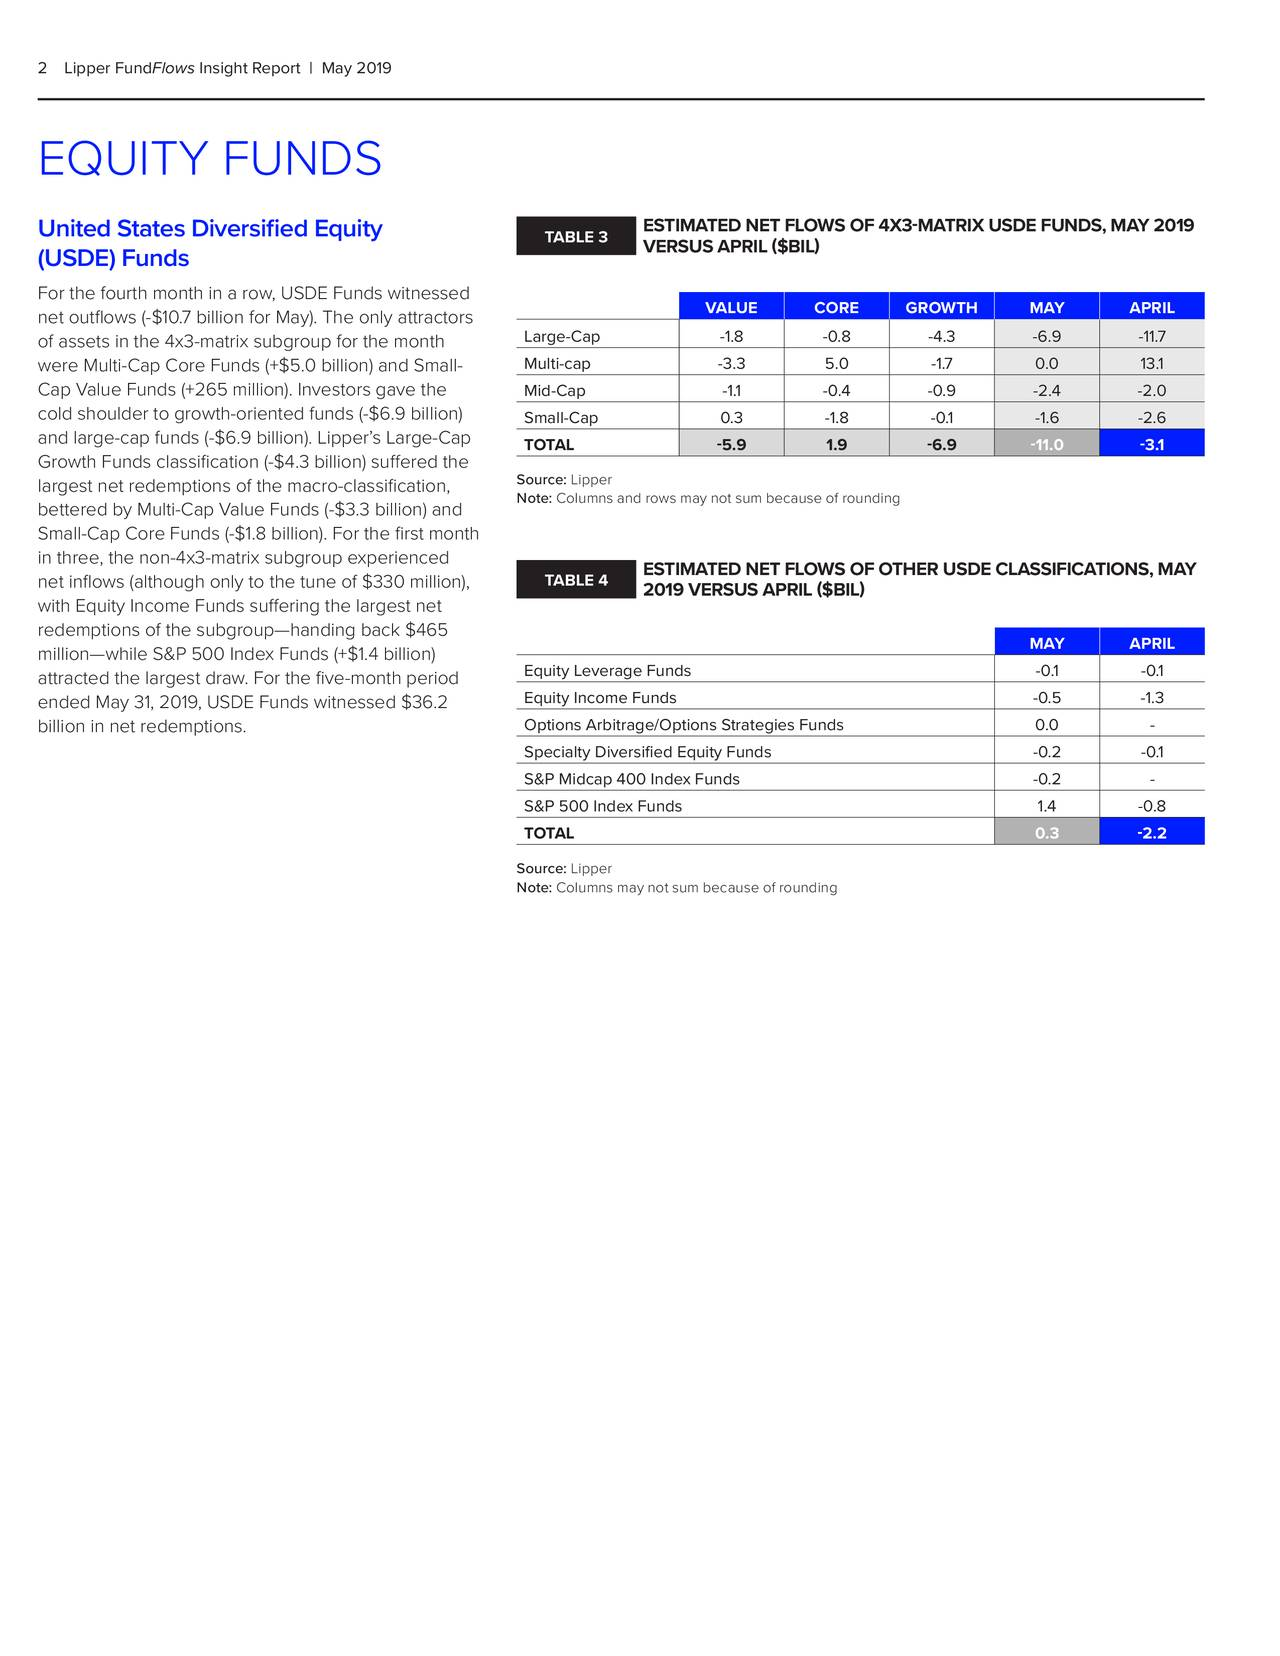 2Lipper FundFlows Insight Report   May 2019